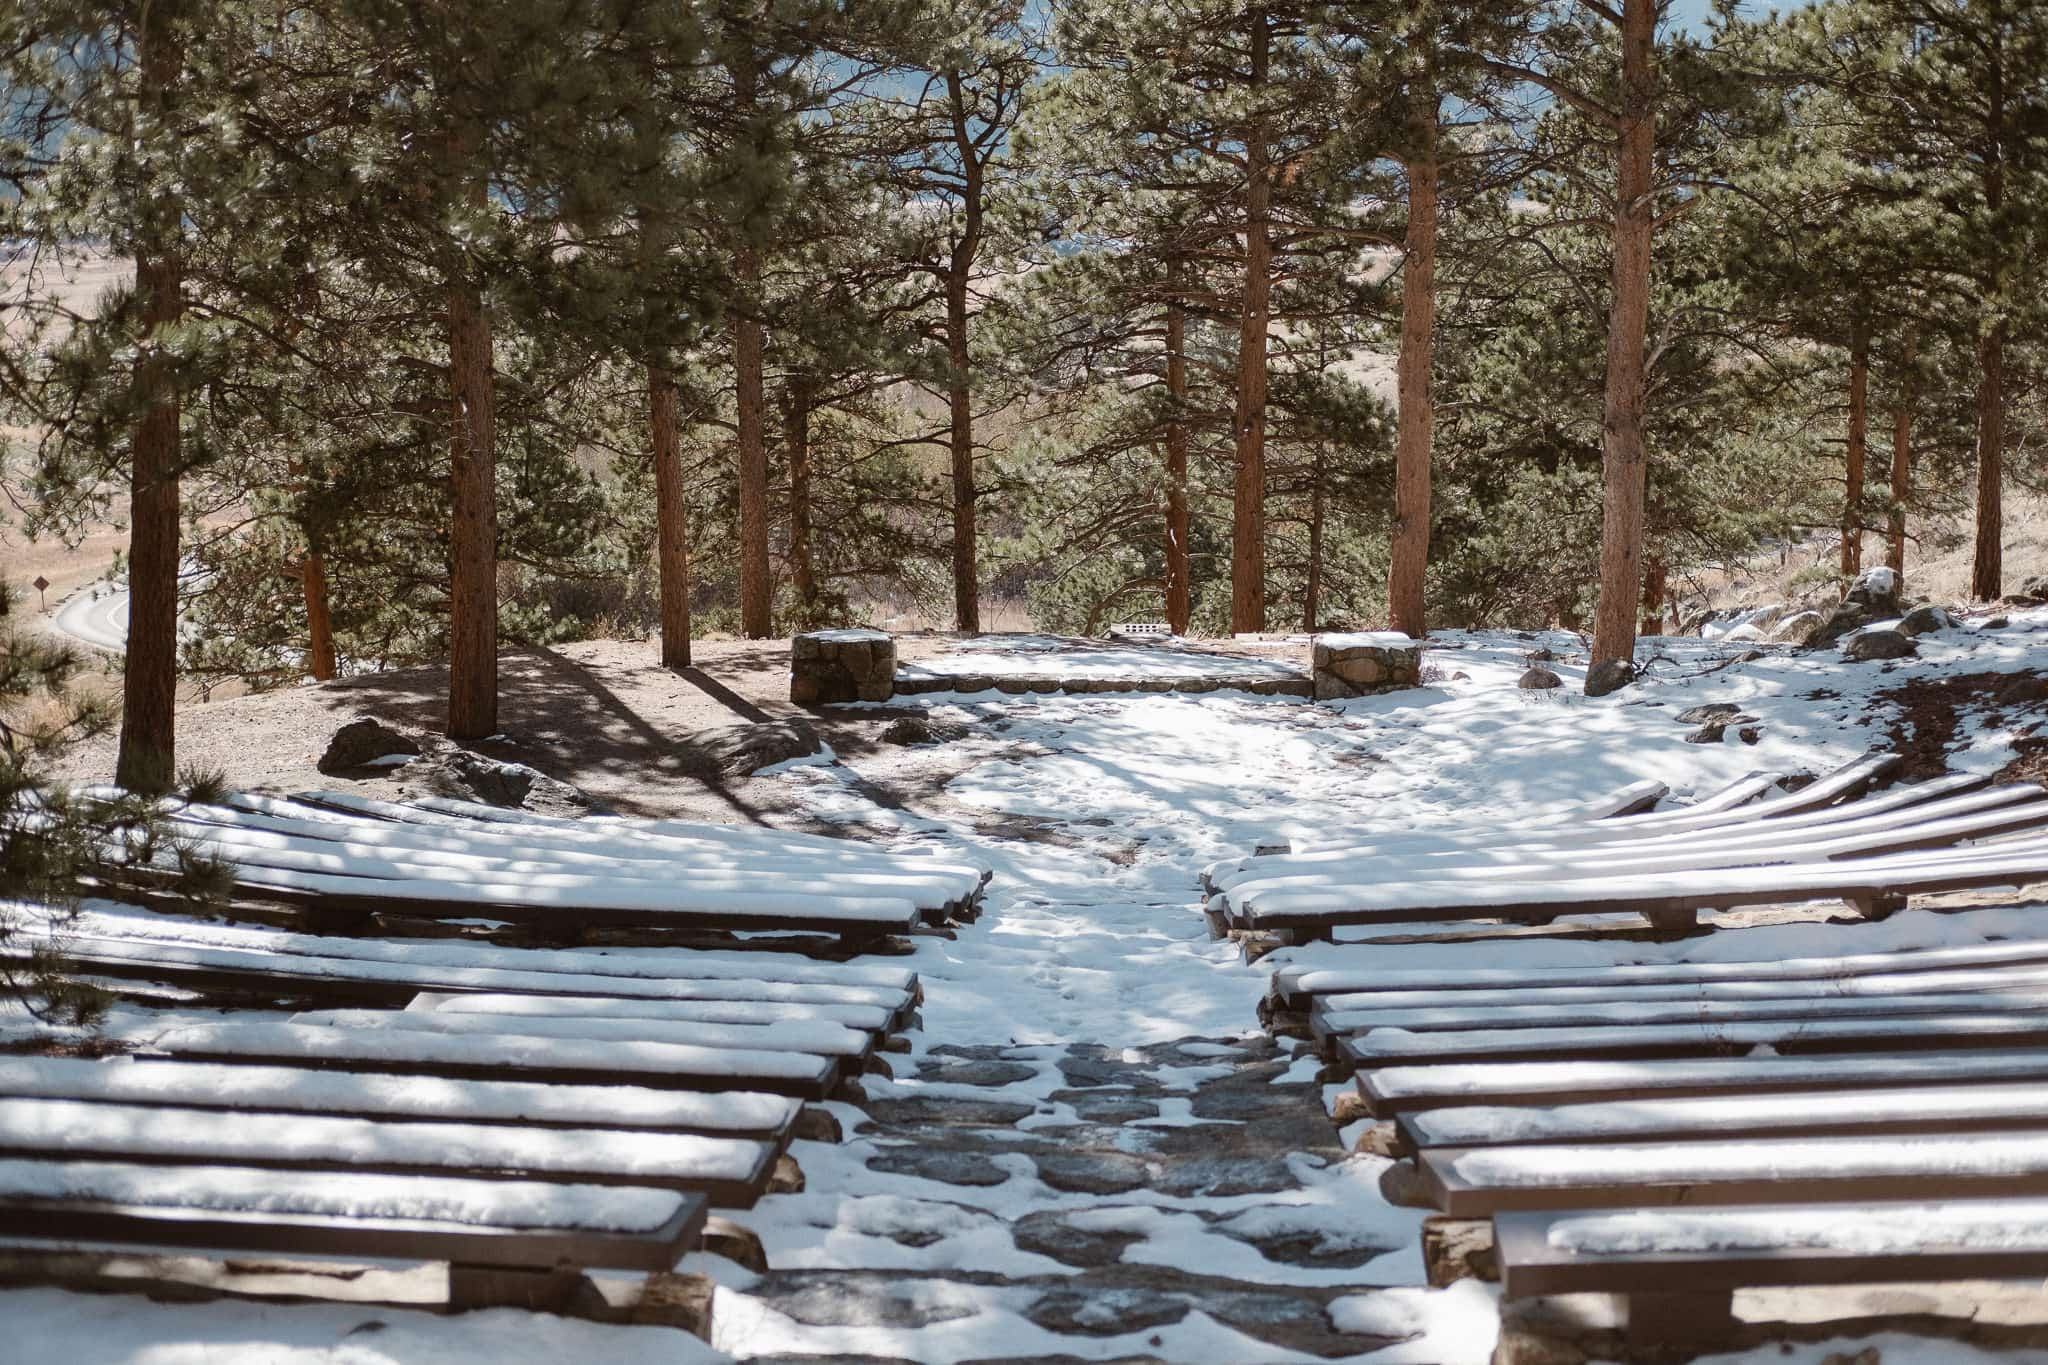 Rocky Mountain National Park wedding ceremony locations, Moraine Park visitor center amphitheater